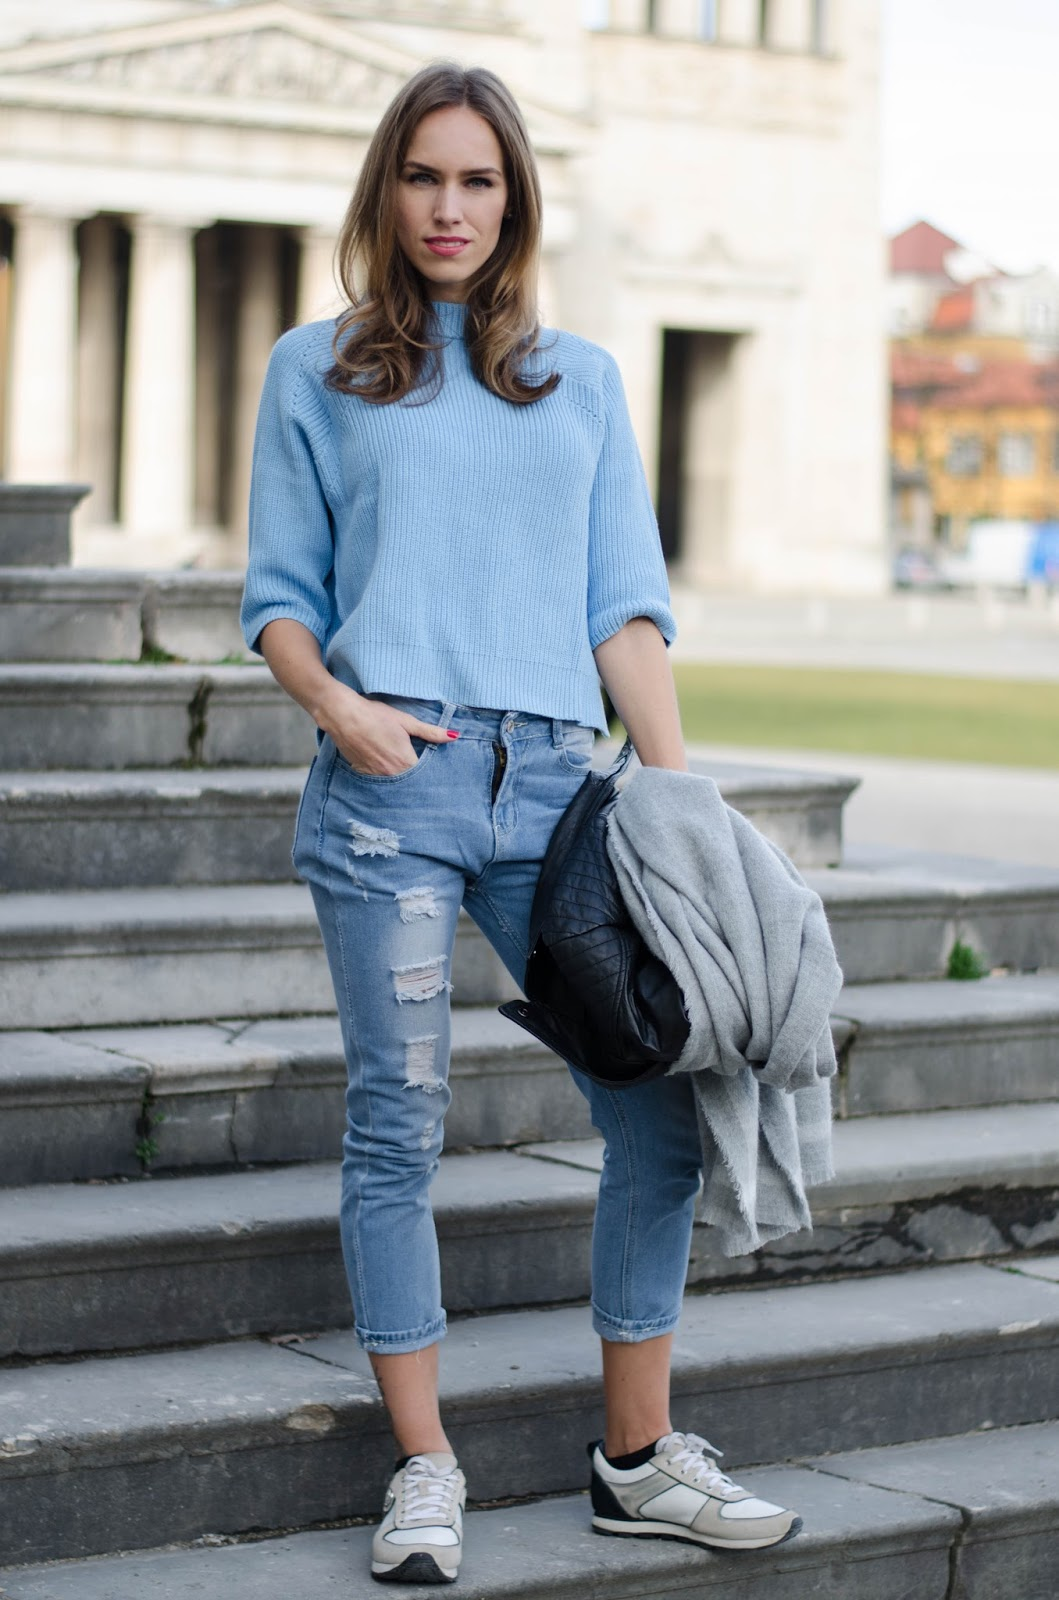 kristjaana mere knitted top ripped jeans sneakers casual spring look